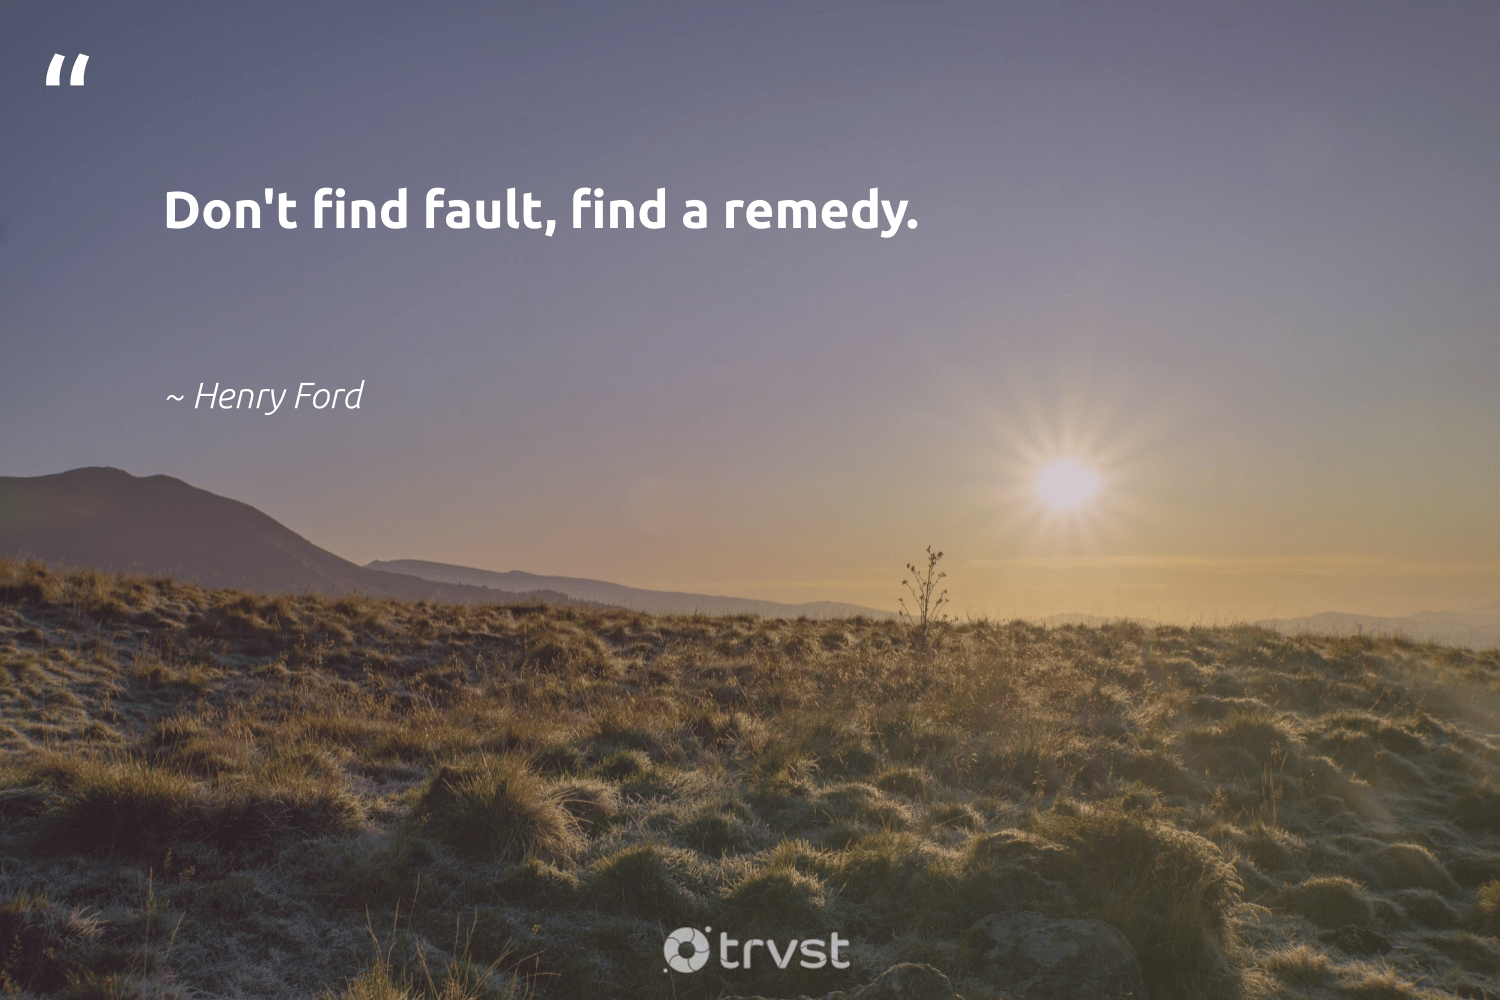 """Don't find fault, find a remedy.""  - Henry Ford #trvst #quotes #nevergiveup #changetheworld #futureofwork #planetearthfirst #begreat #takeaction #softskills #beinspired #bethechange #dotherightthing"